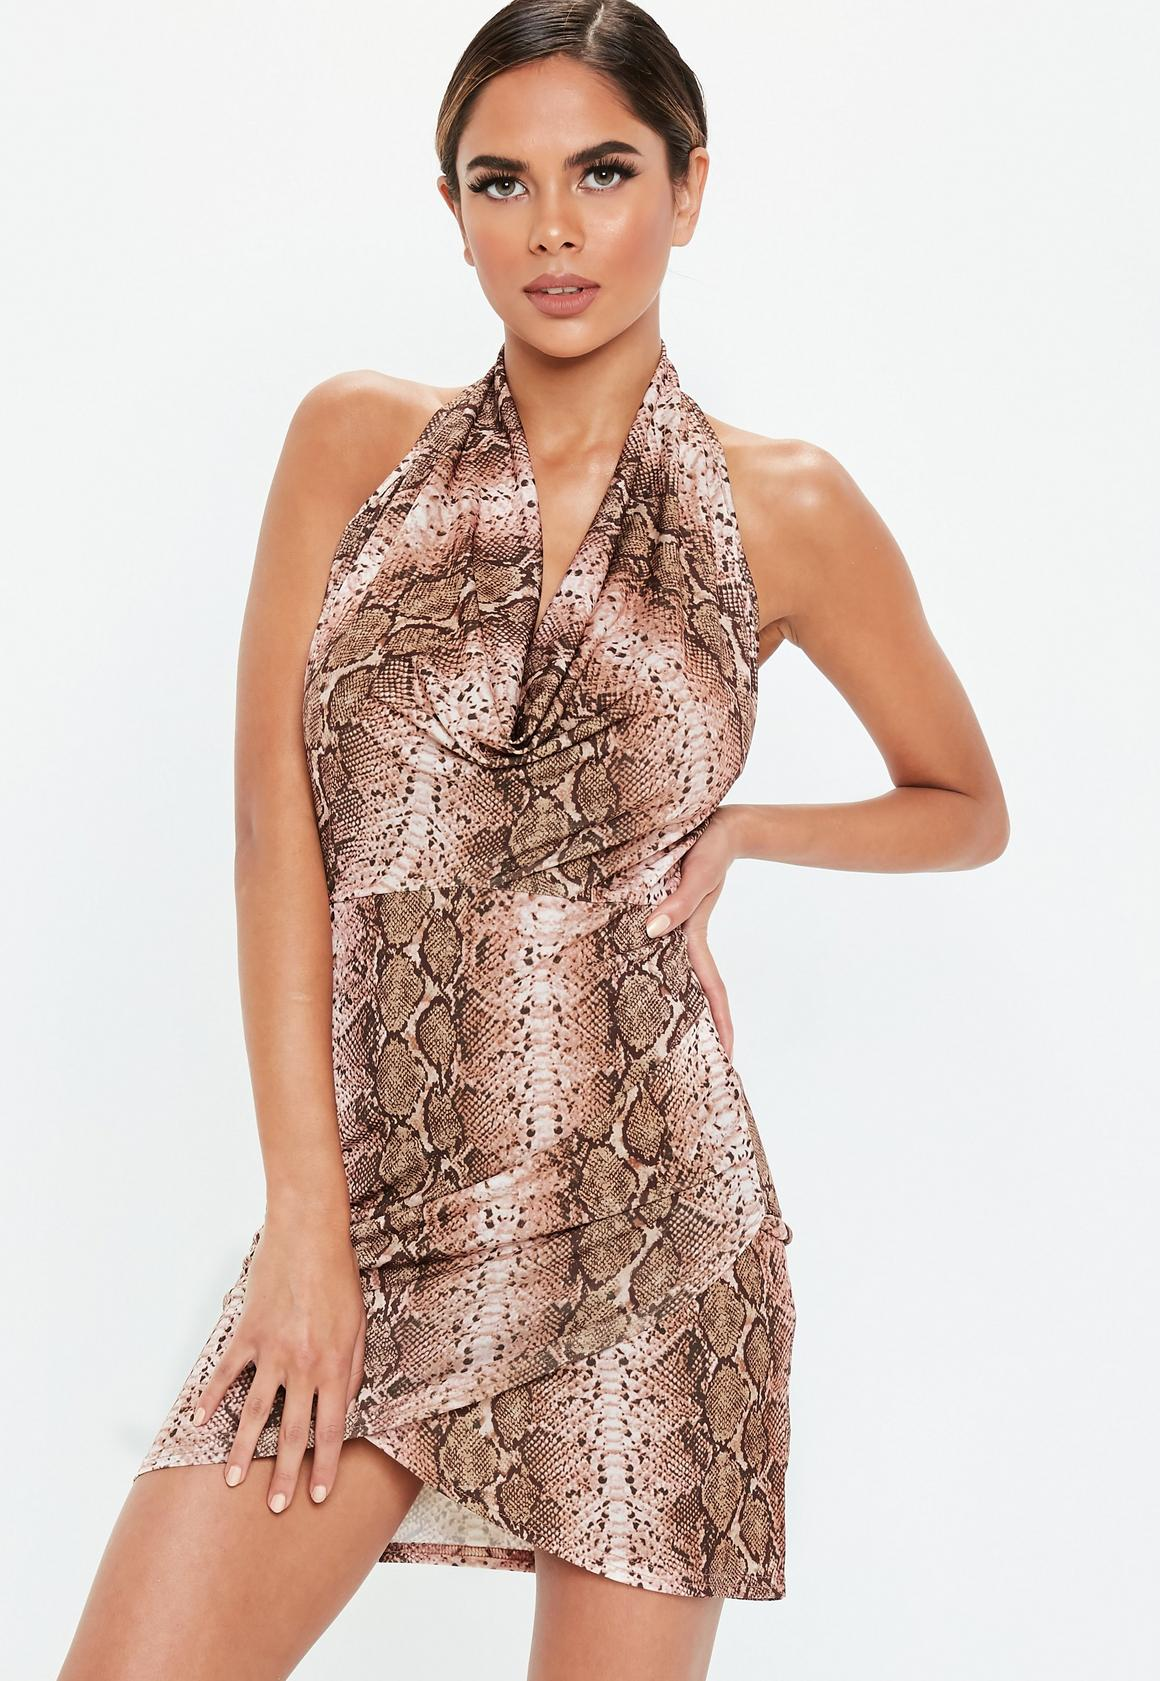 Missguided - robe dos-nu courte marron à imprimé serpent - 1